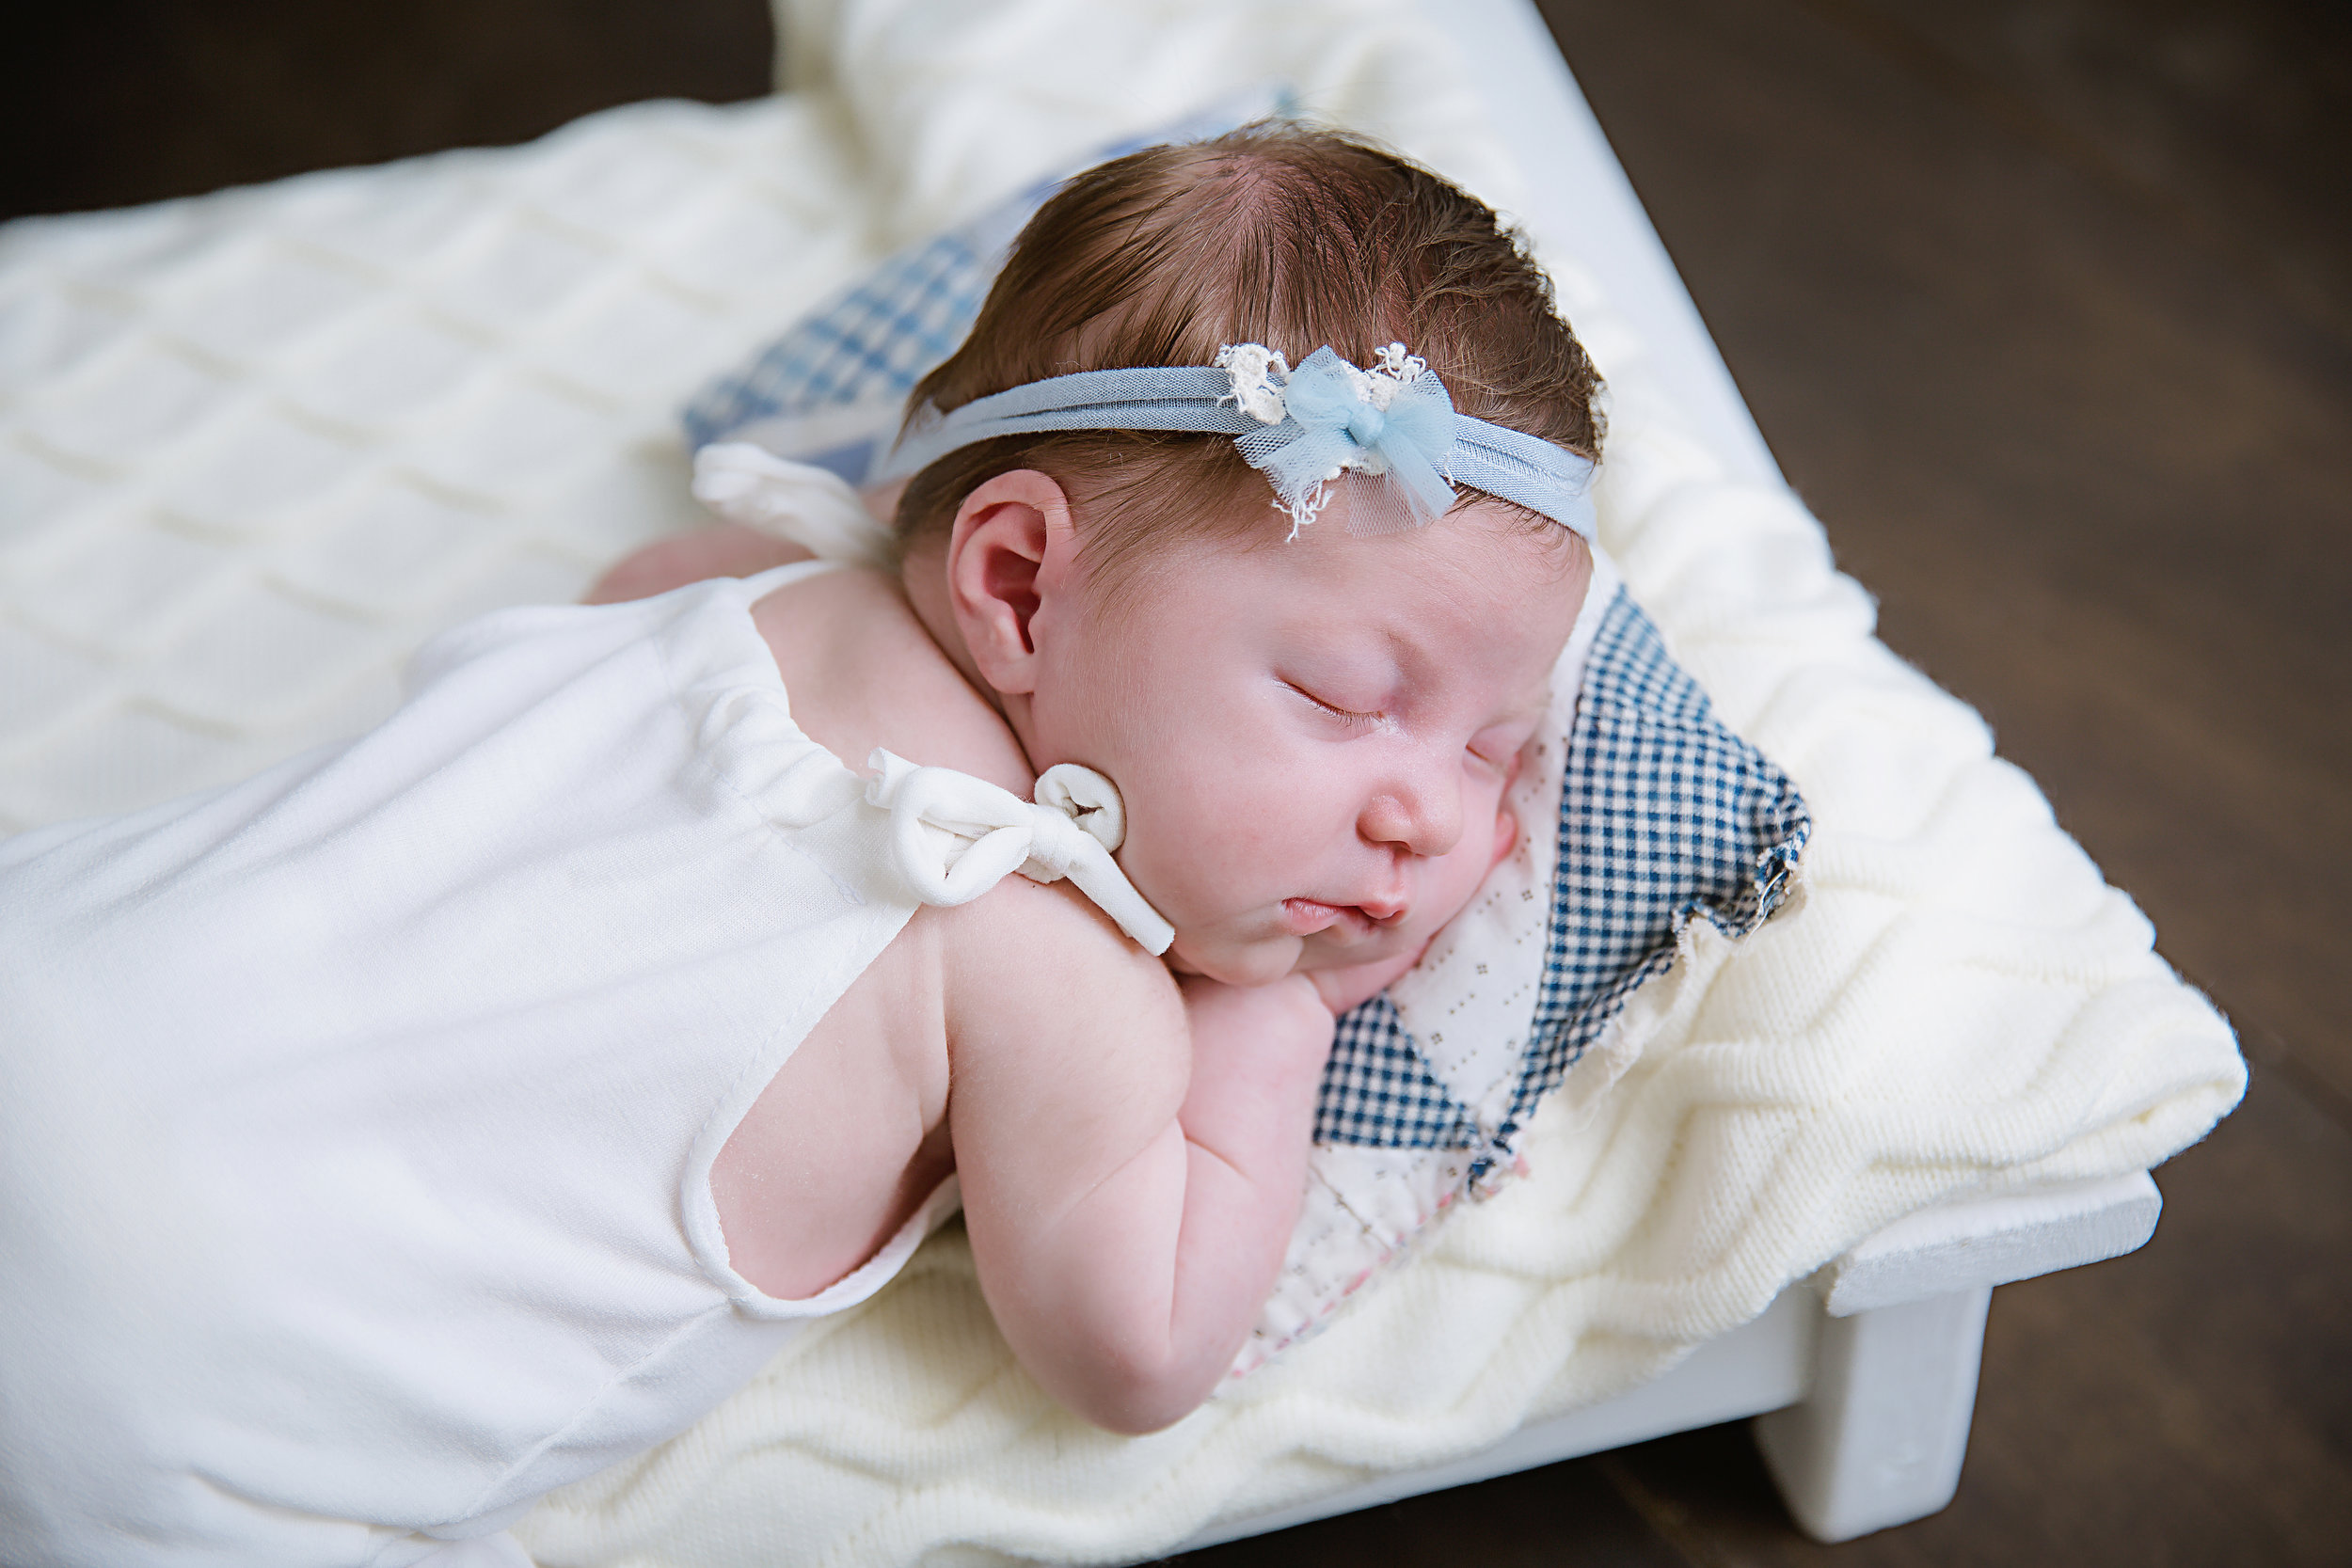 newborn-baby-girl-dressed-in-white-lying-on-bed-sleeping-peacefully-photography-shoot-new-jersey